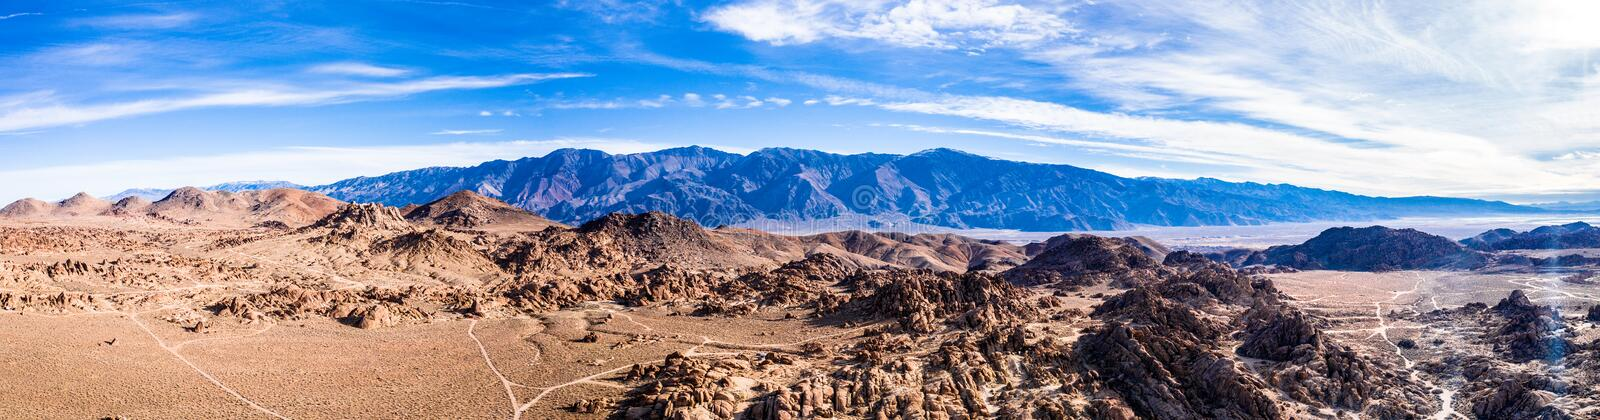 Aerial View of Mt Whitney Lone Pine, CA Eastern Sierra Nevada Alabama Hills. USA stock photo